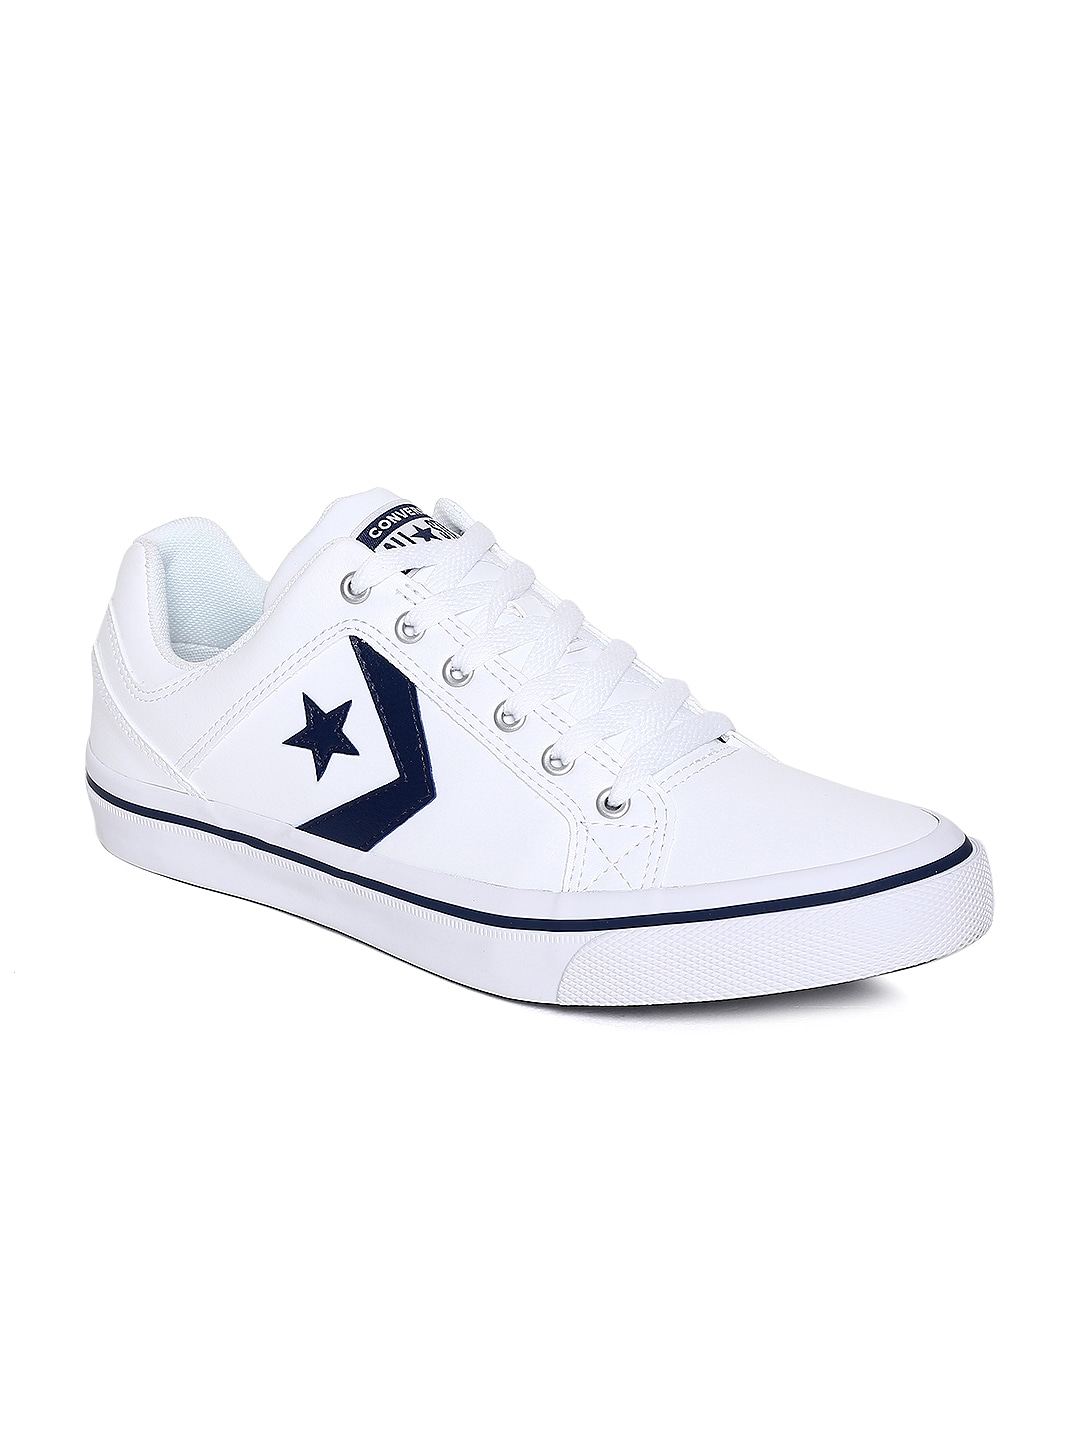 in India Synthetic Shoes Converse Synthetic Converse Shoes Buy online 4R5jA3L